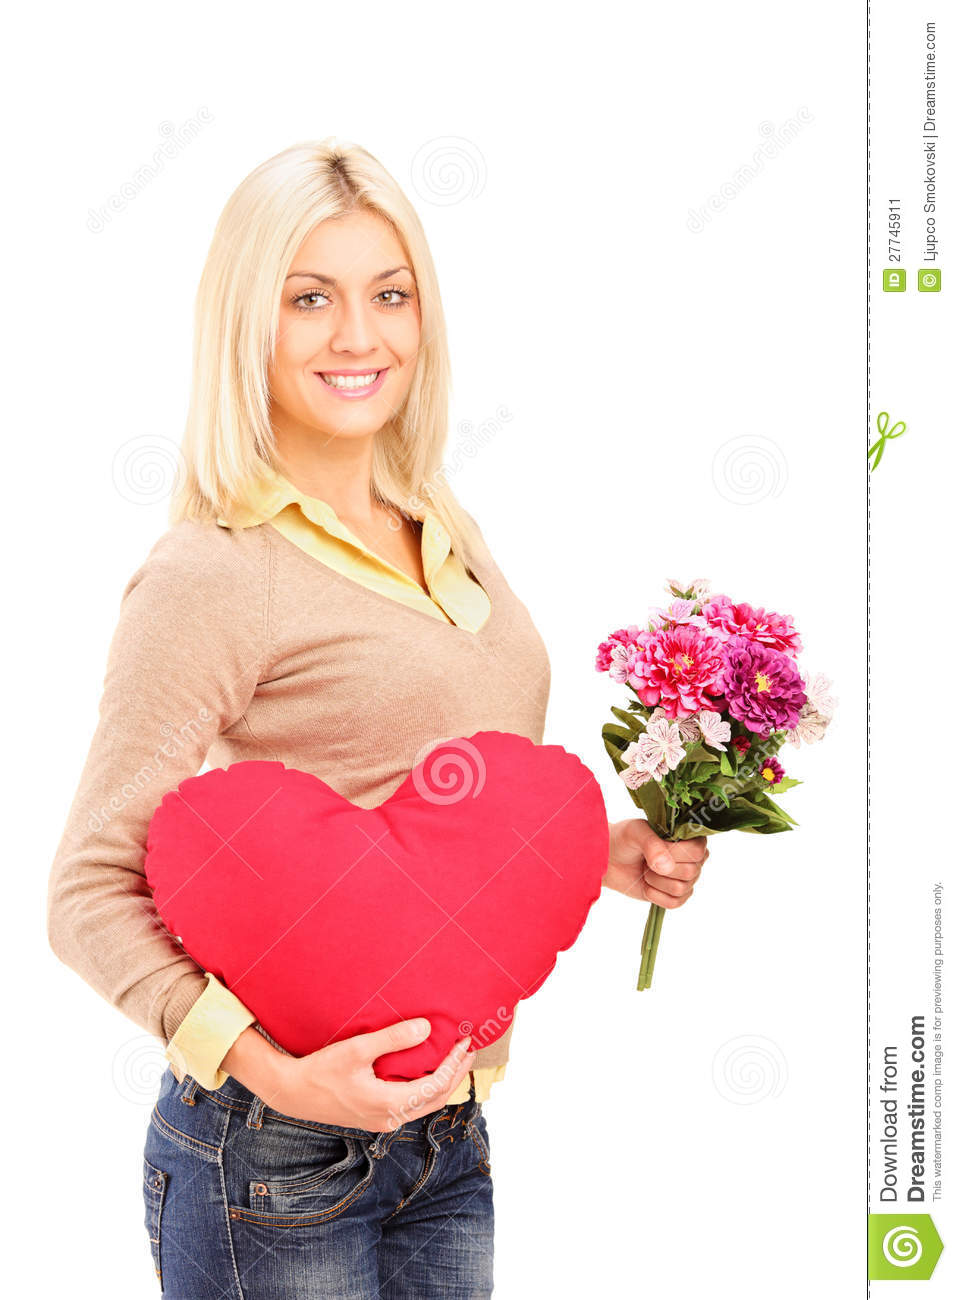 A Young Woman Holding Flowers And Red Heart Stock Image ...